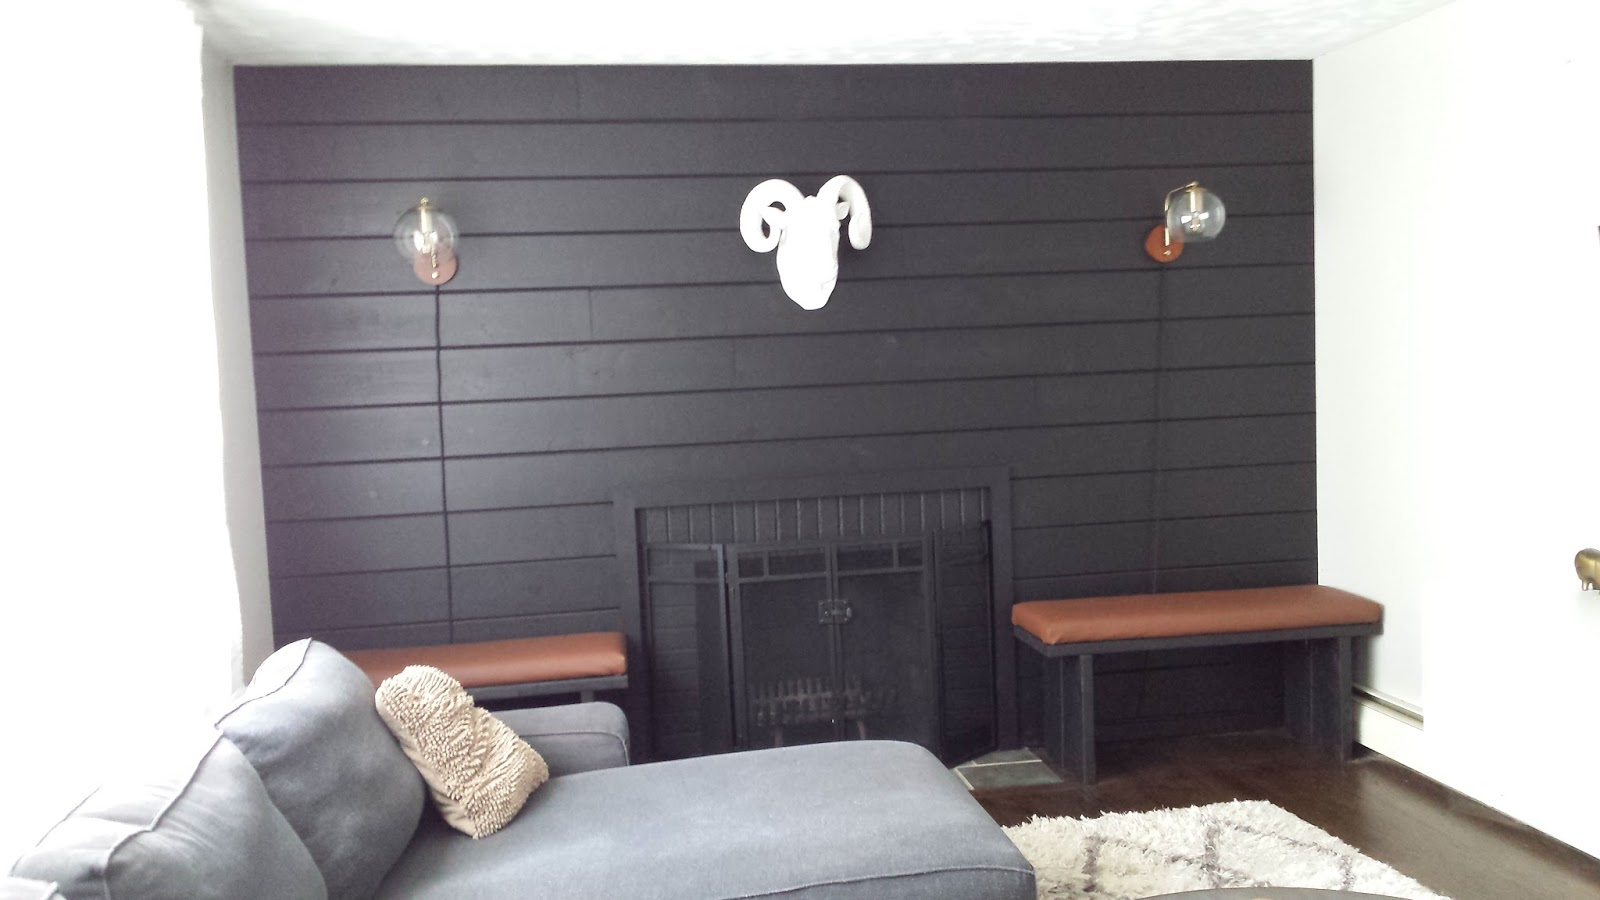 Lilly's Home Designs: Black Shiplap Fireplace Wall